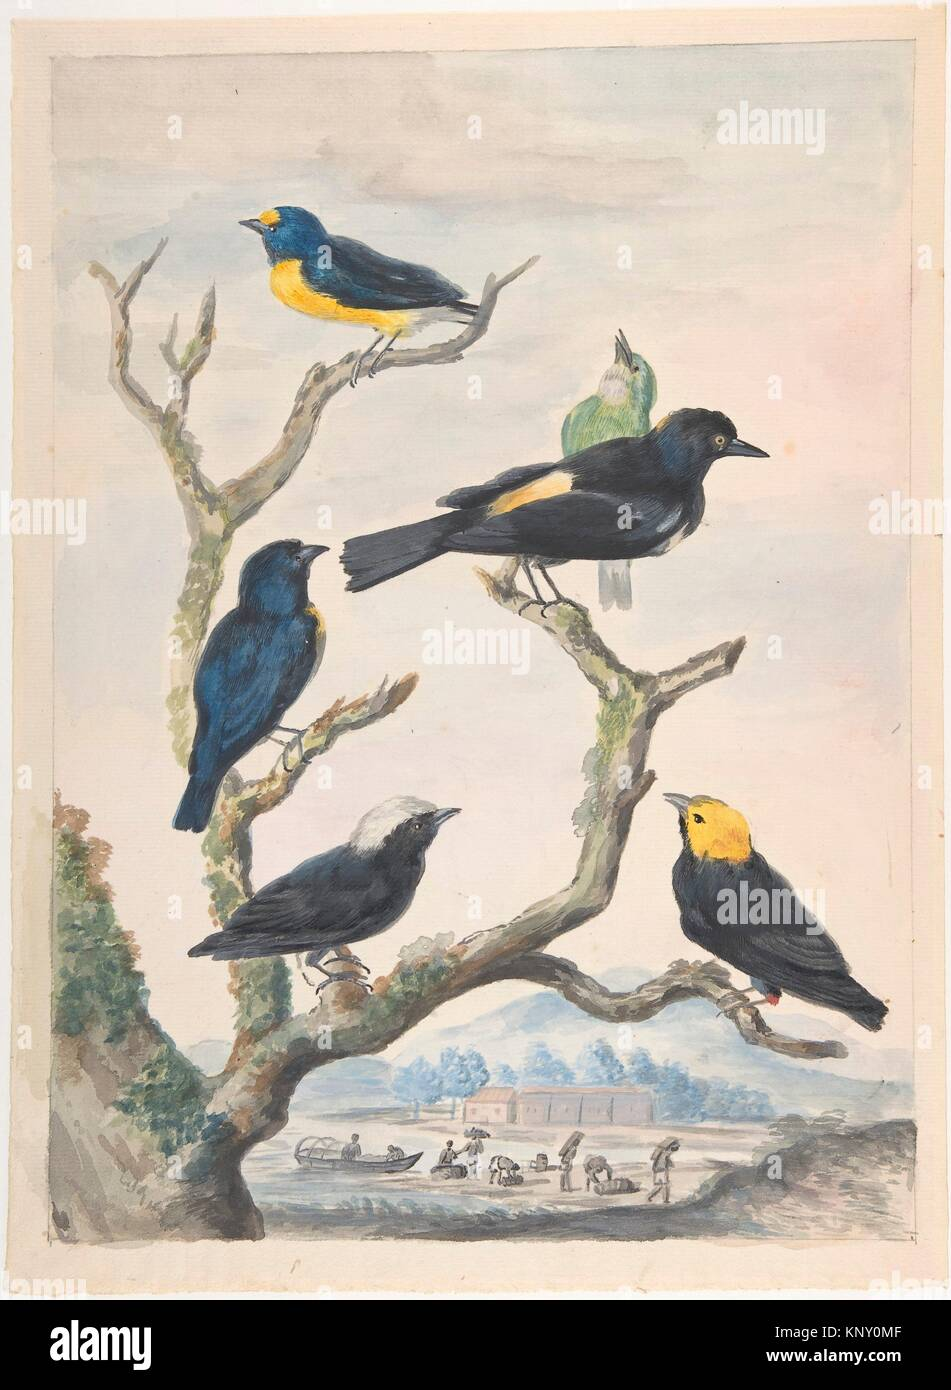 Six South American Birds. Artist: Abraham Meertens (Dutch, 1747-1823); Date: mid-18th-early 19th century; Medium: - Stock Image